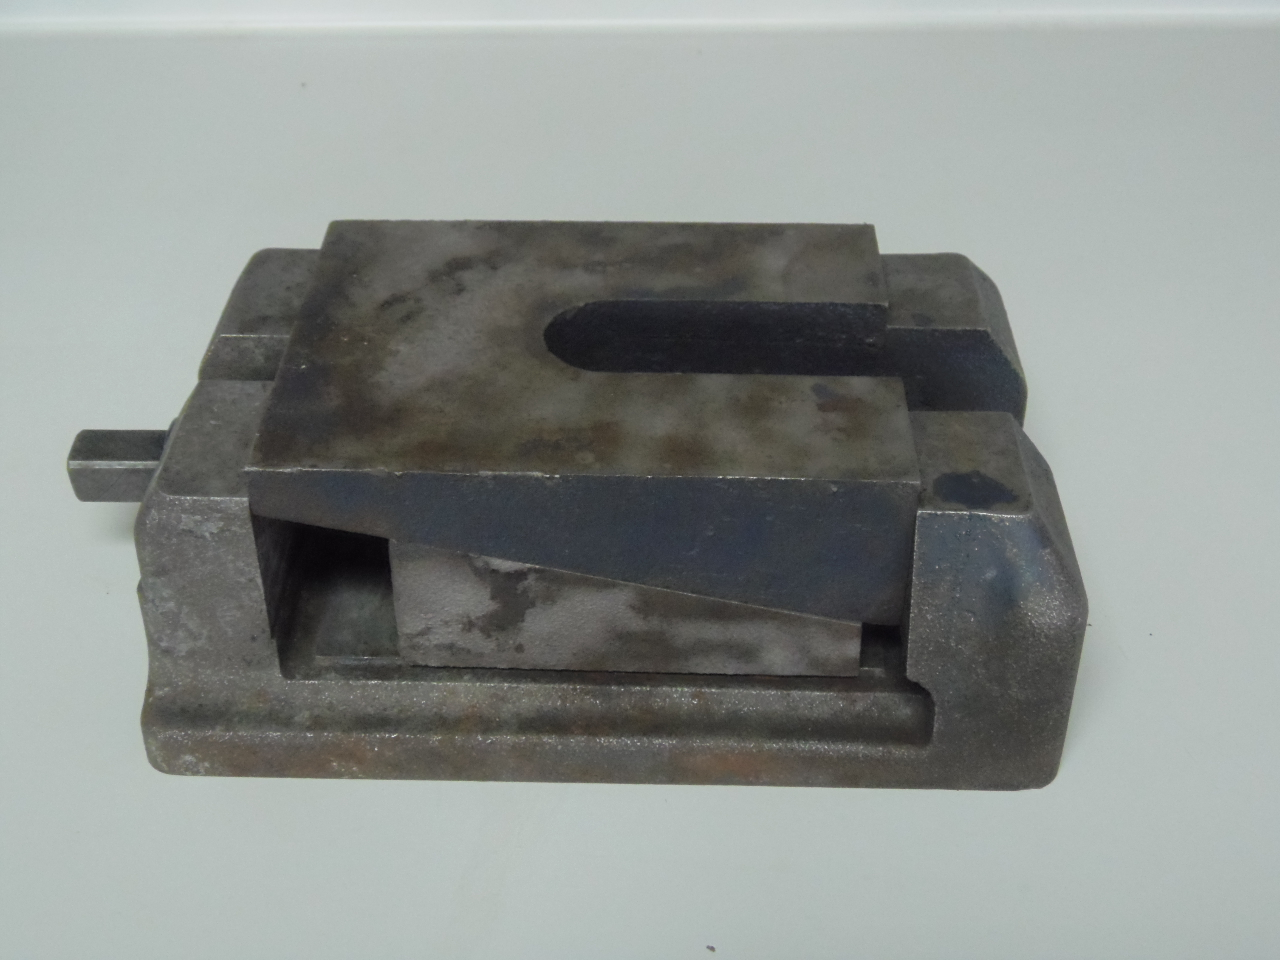 "HEAVY DUTY MACHINE LEVELING BLOCKS, WEDGE TYPE, LEVELING PADS, 10"" x 7"" x 3 1/4 to 3 5/8"" H, 49 AVAILABLE."